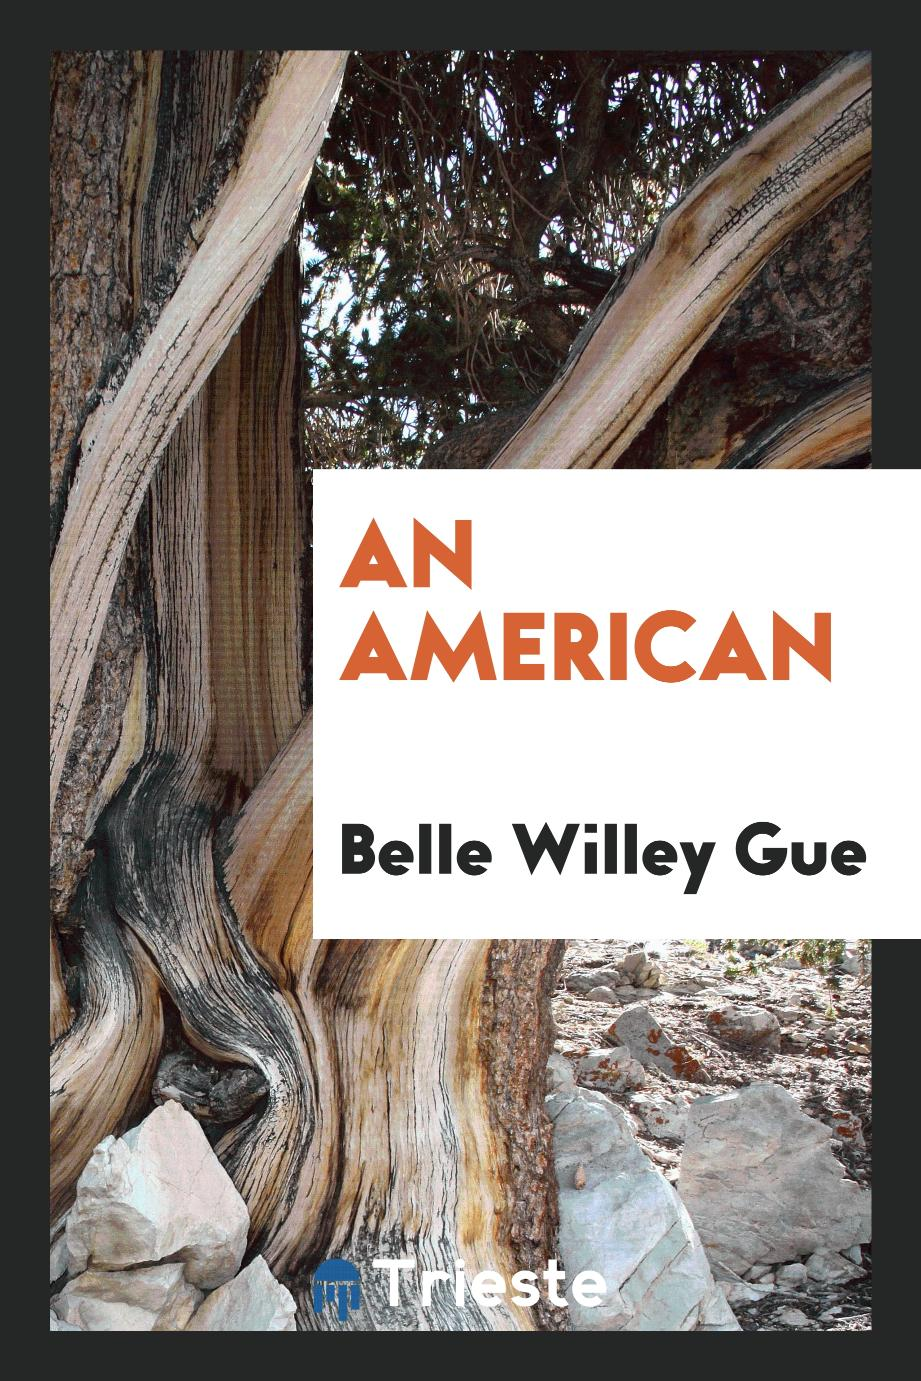 Belle Willey Gue - An American